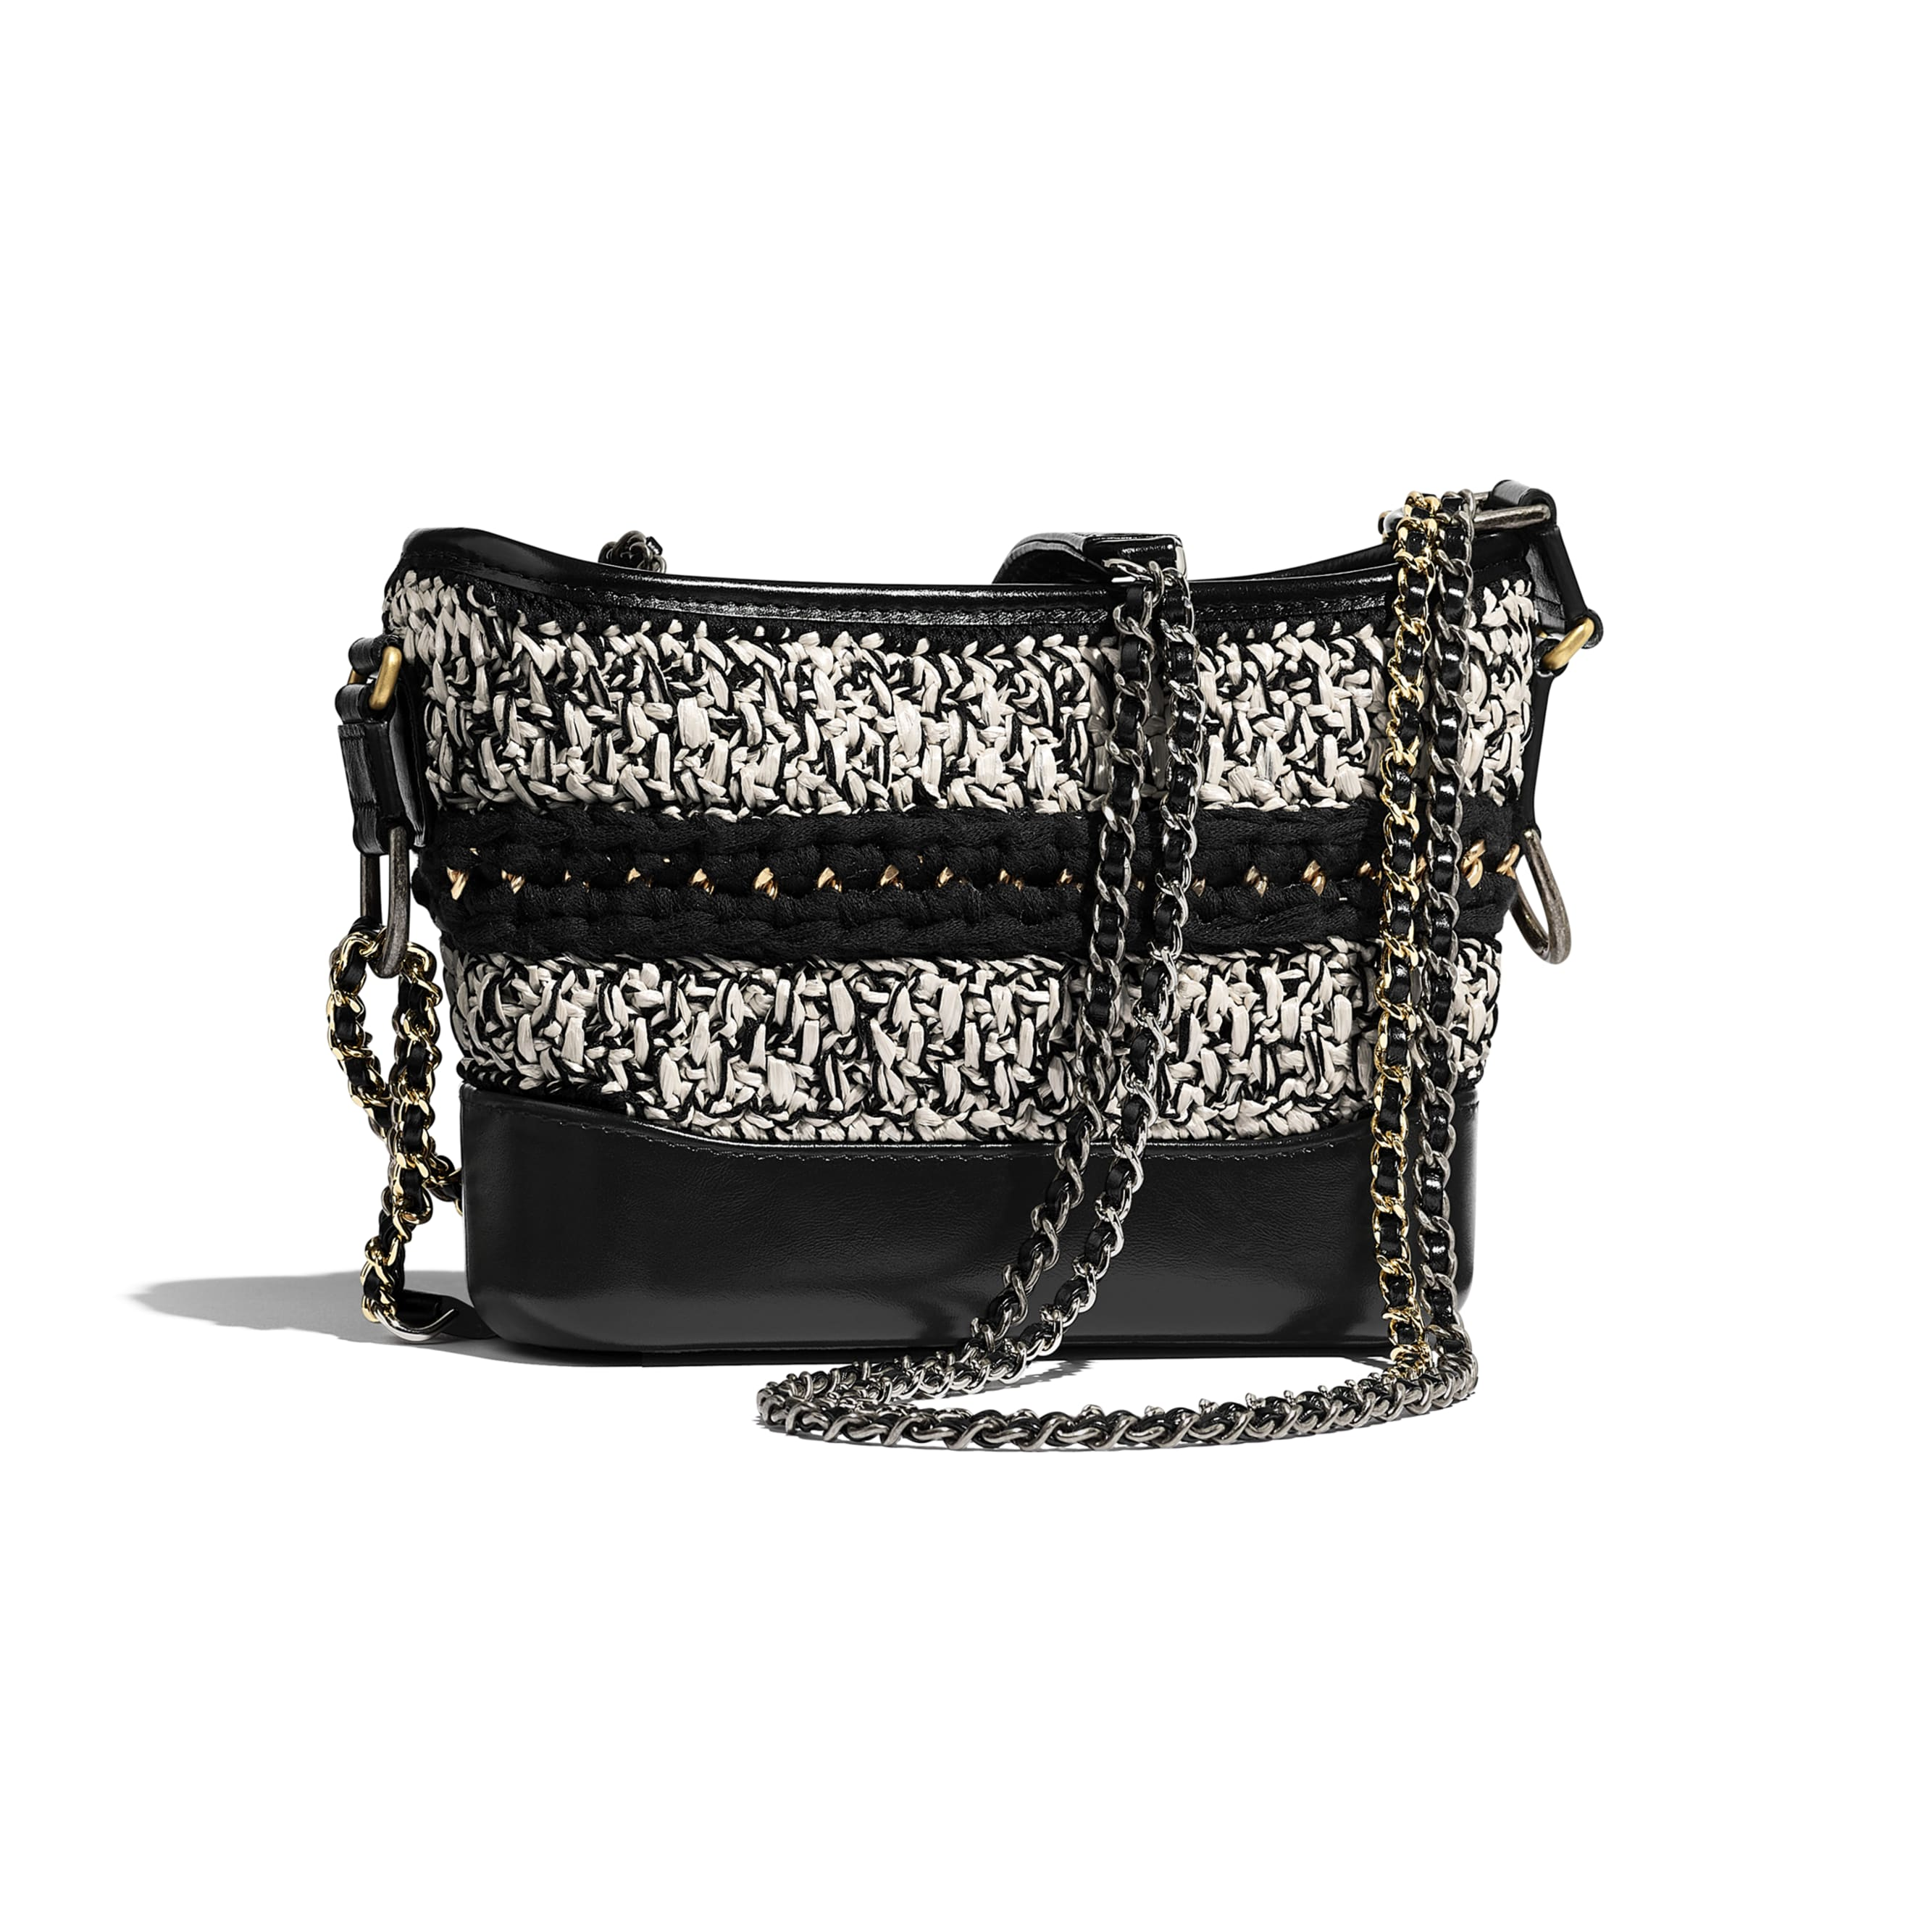 CHANEL'S GABRIELLE Small Hobo Bag - Black & White - Mixed Fibres, Calfskin, Gold-Tone, Silver-Tone & Ruthenium-Finish Metal - CHANEL - Alternative view - see standard sized version